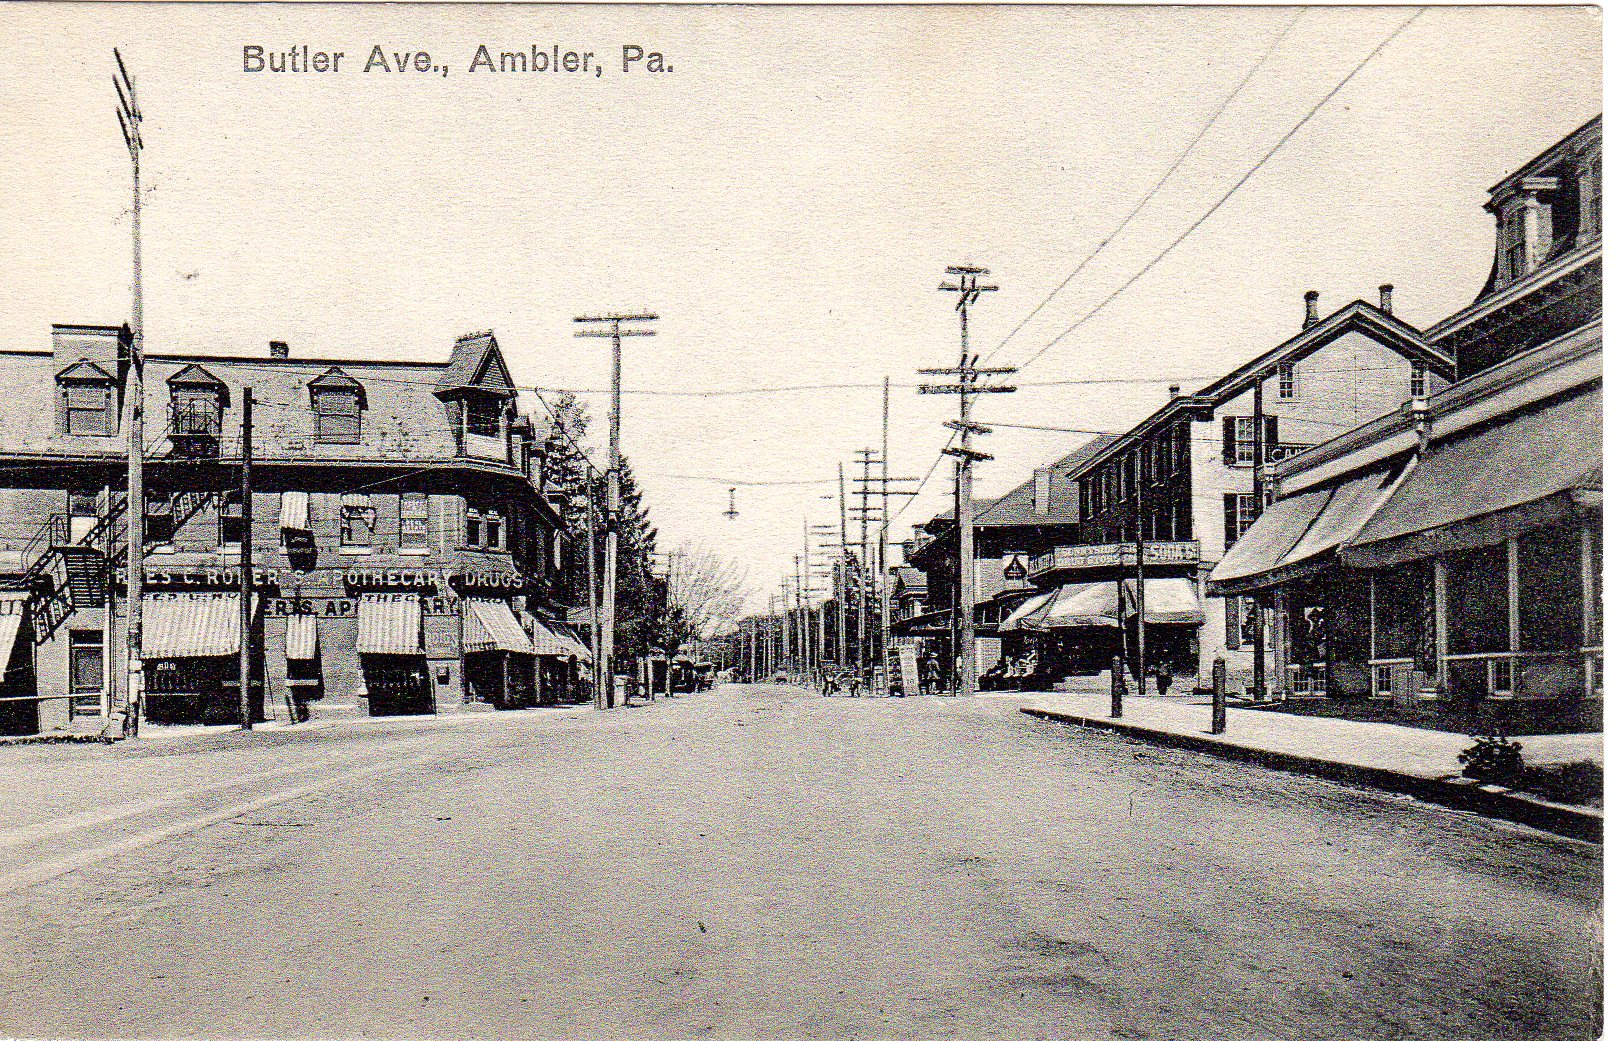 Post Card Collection (E Simon)_2682_08_Butler Ave, Ambler, Pa_c 1905